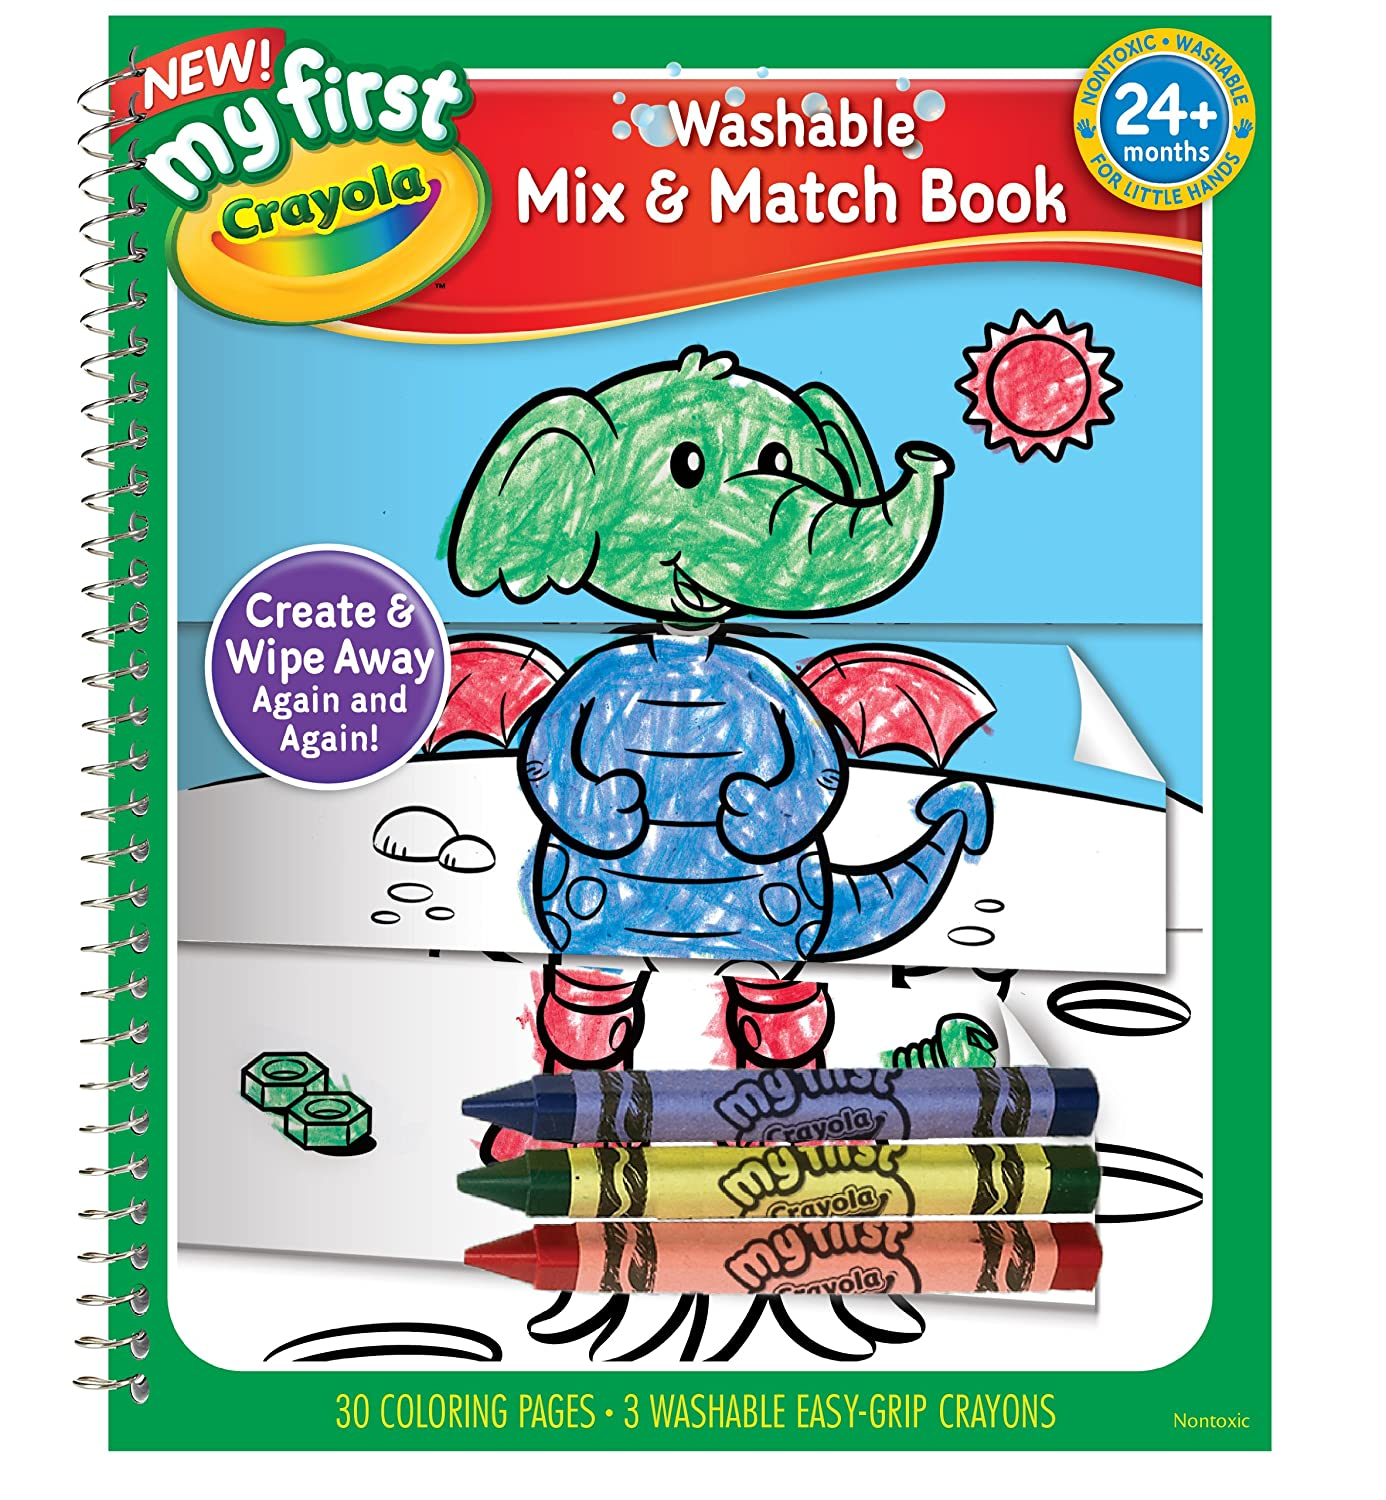 Amazon.com: Crayola My First Crayola Mix and Match Coloring Book ...